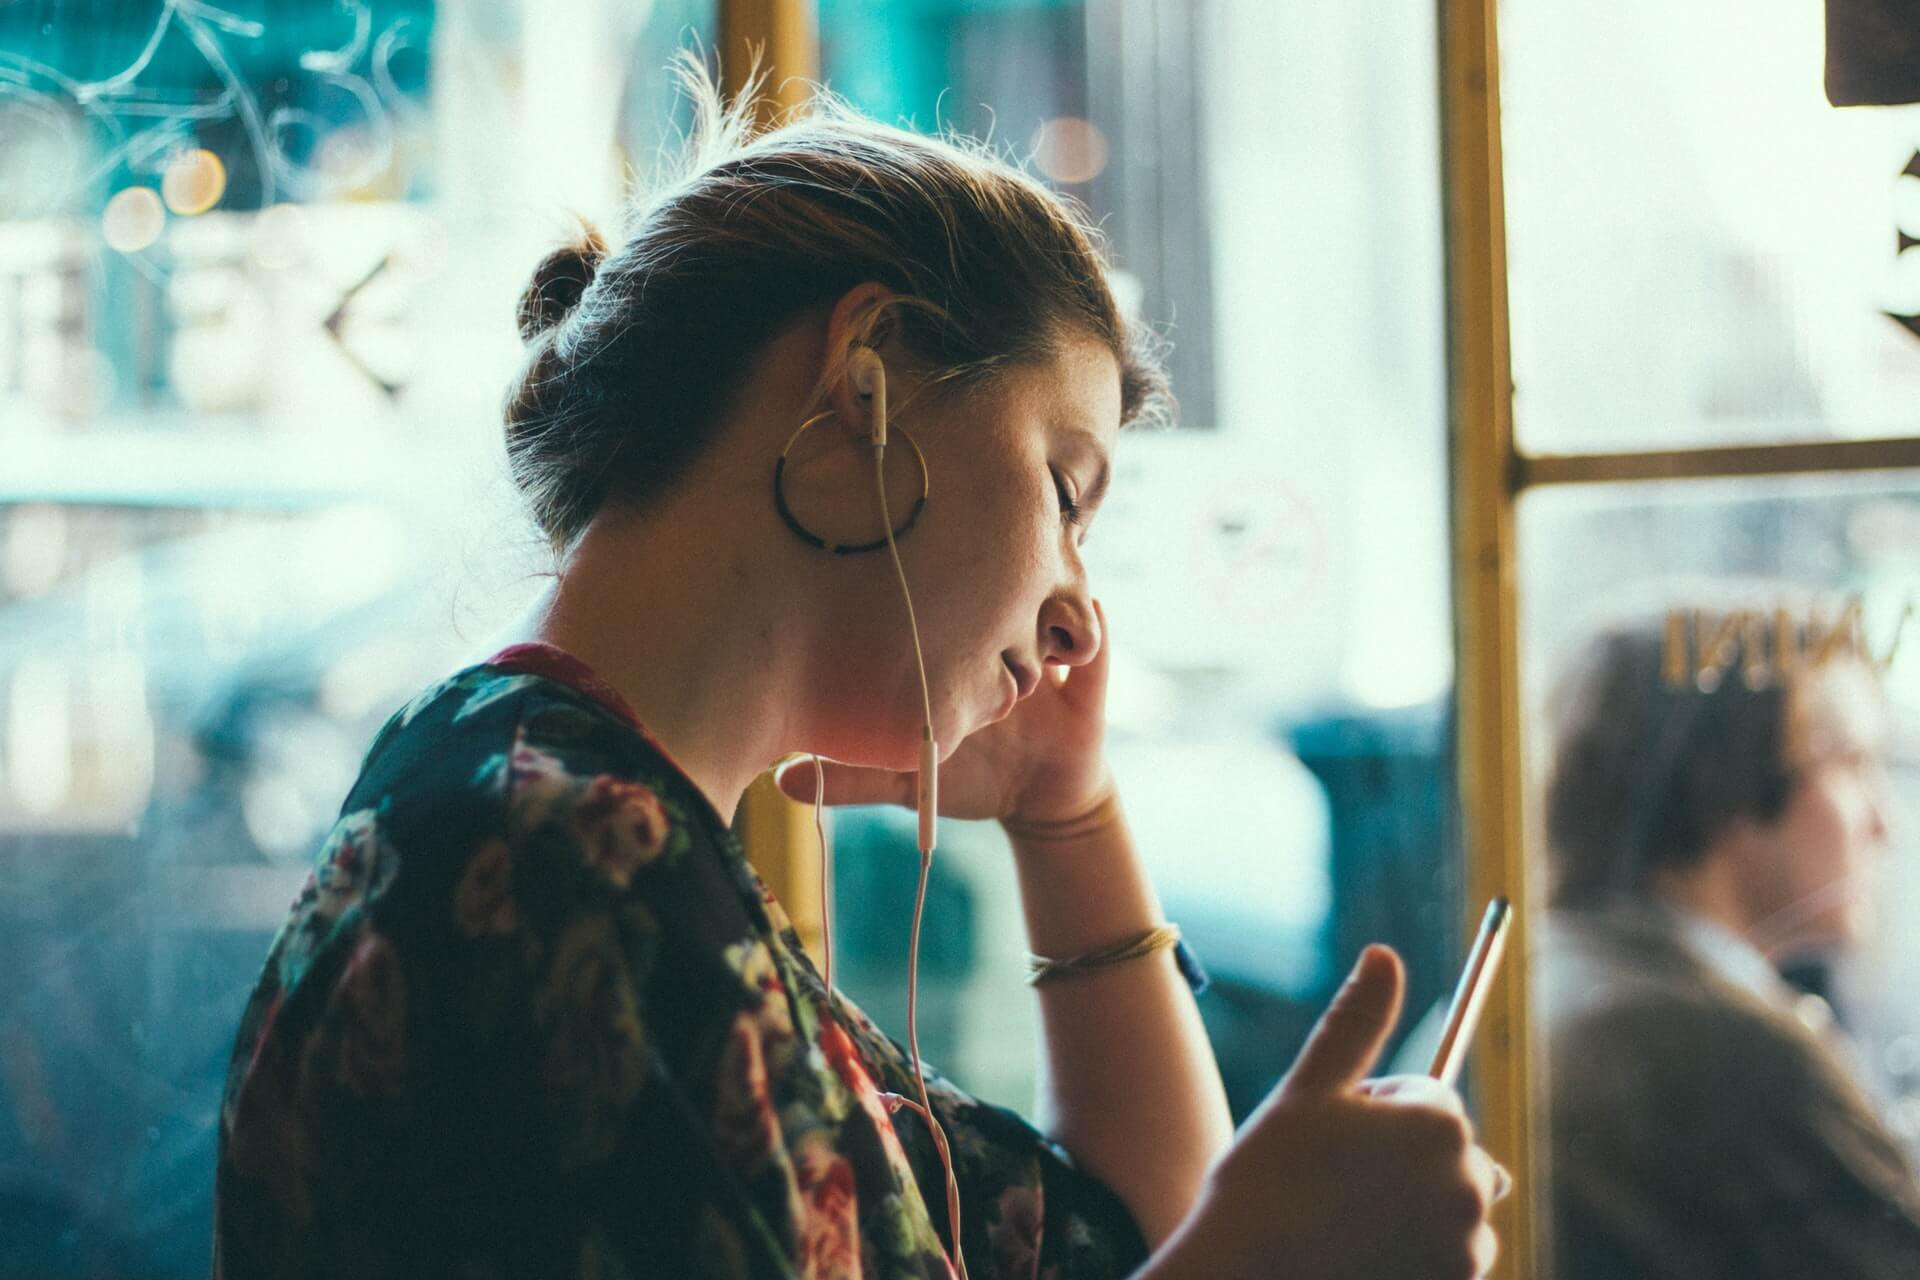 The one skill you need to understand your Customer: Listening